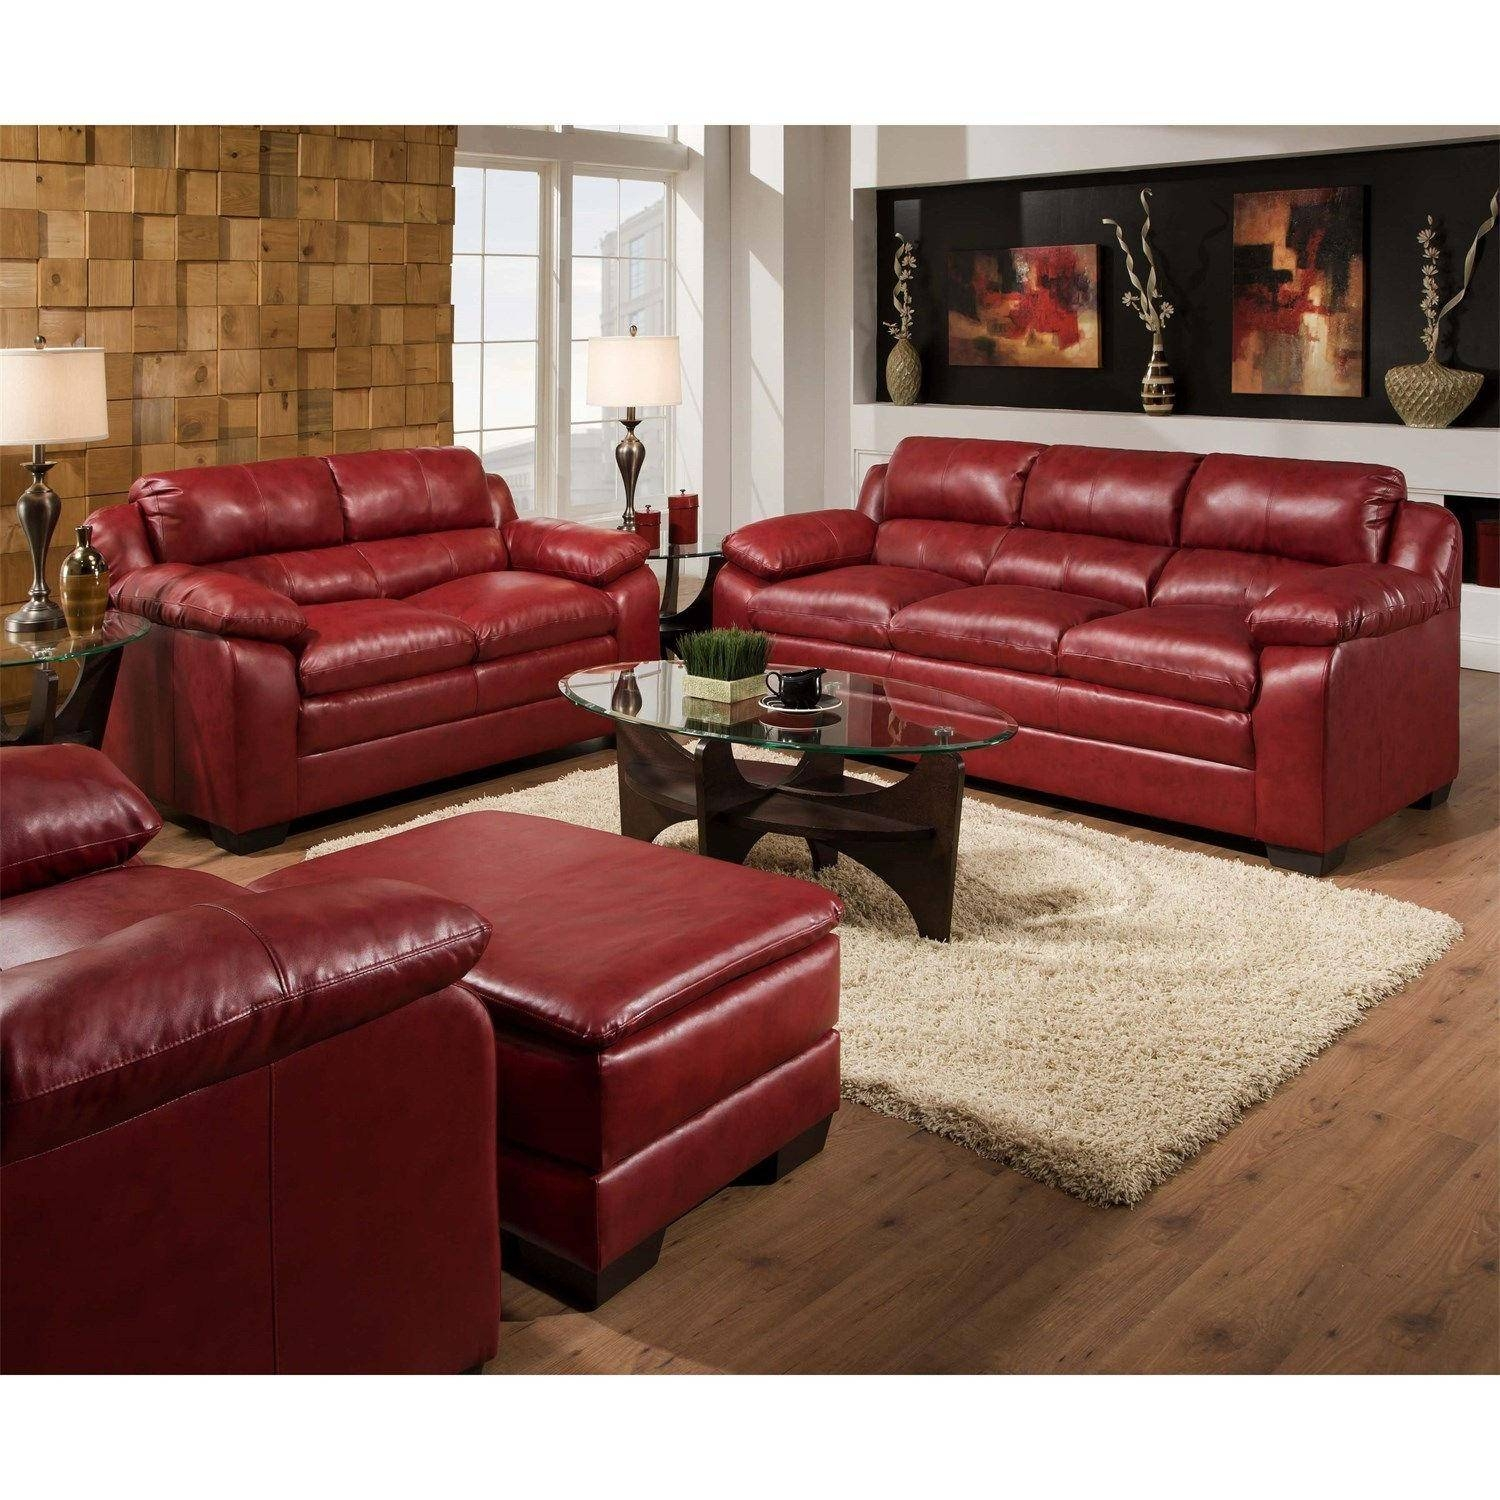 Sofa Ideas: Simmons Bonded Leather Sofas (Explore #8 Of 20 Photos) within Simmons Bonded Leather Sofas (Image 15 of 15)